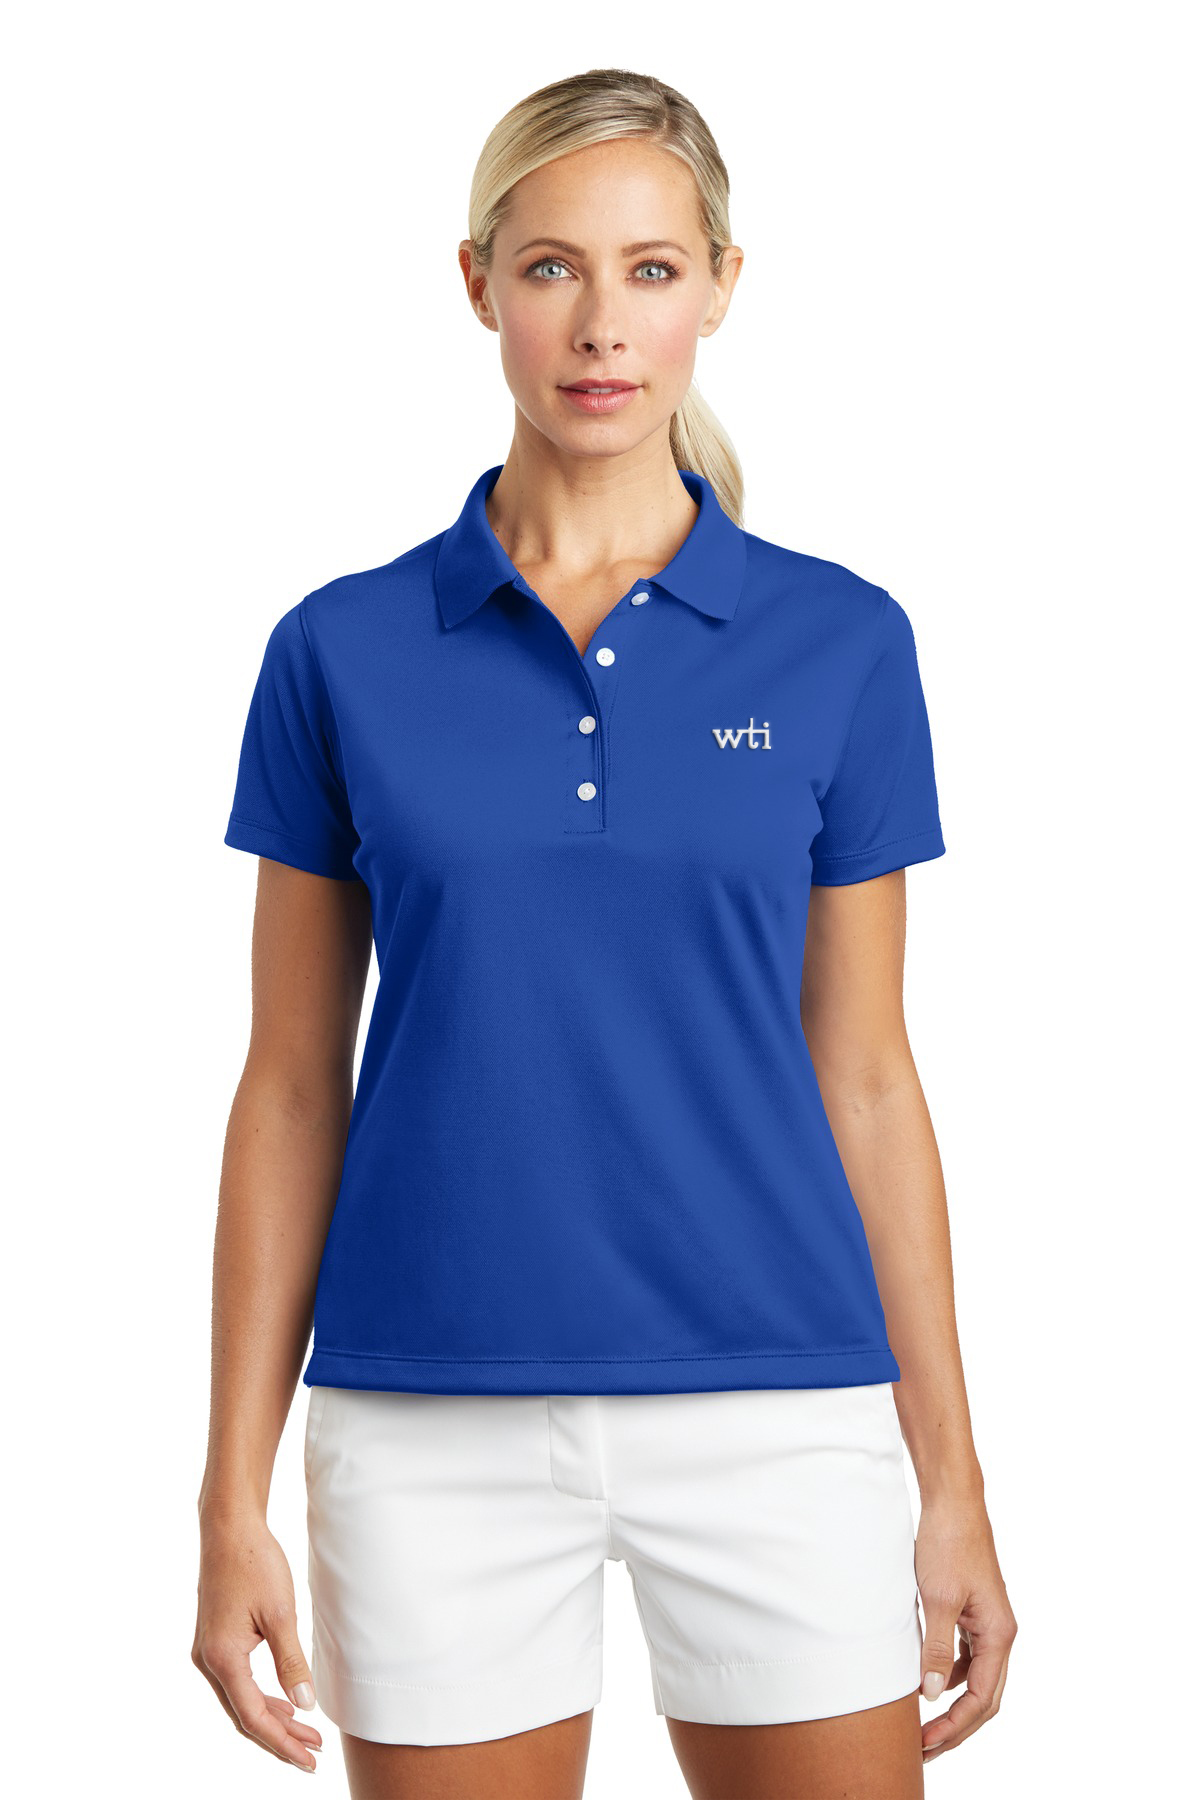 Nike Ladies Tech Basic Dri-FIT Polo.  203697. Prices Starting At $50!